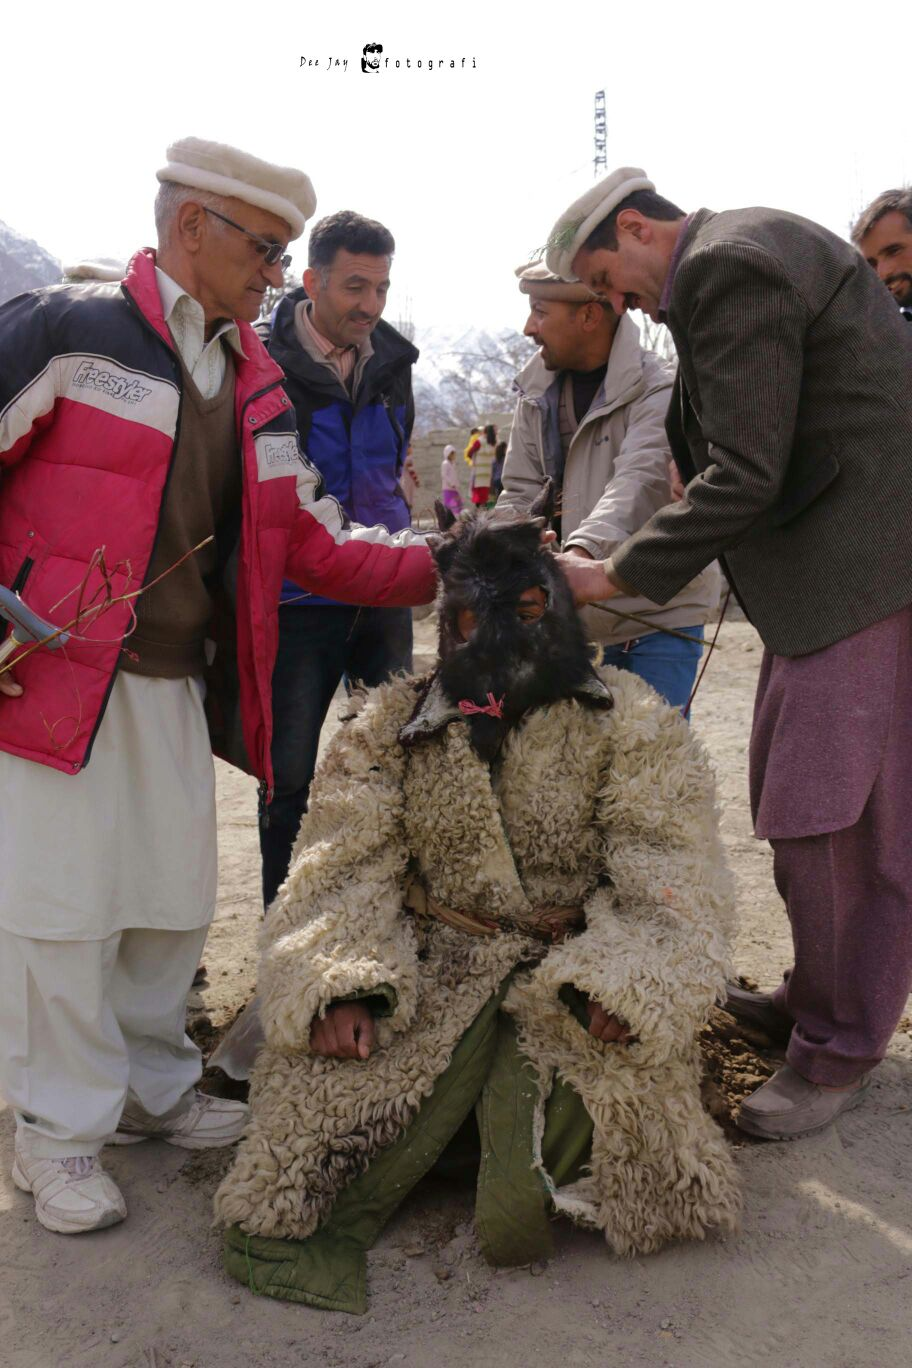 A man dressed to appear as an Oxen is being prepared for the show. Photo: Deedar Ali